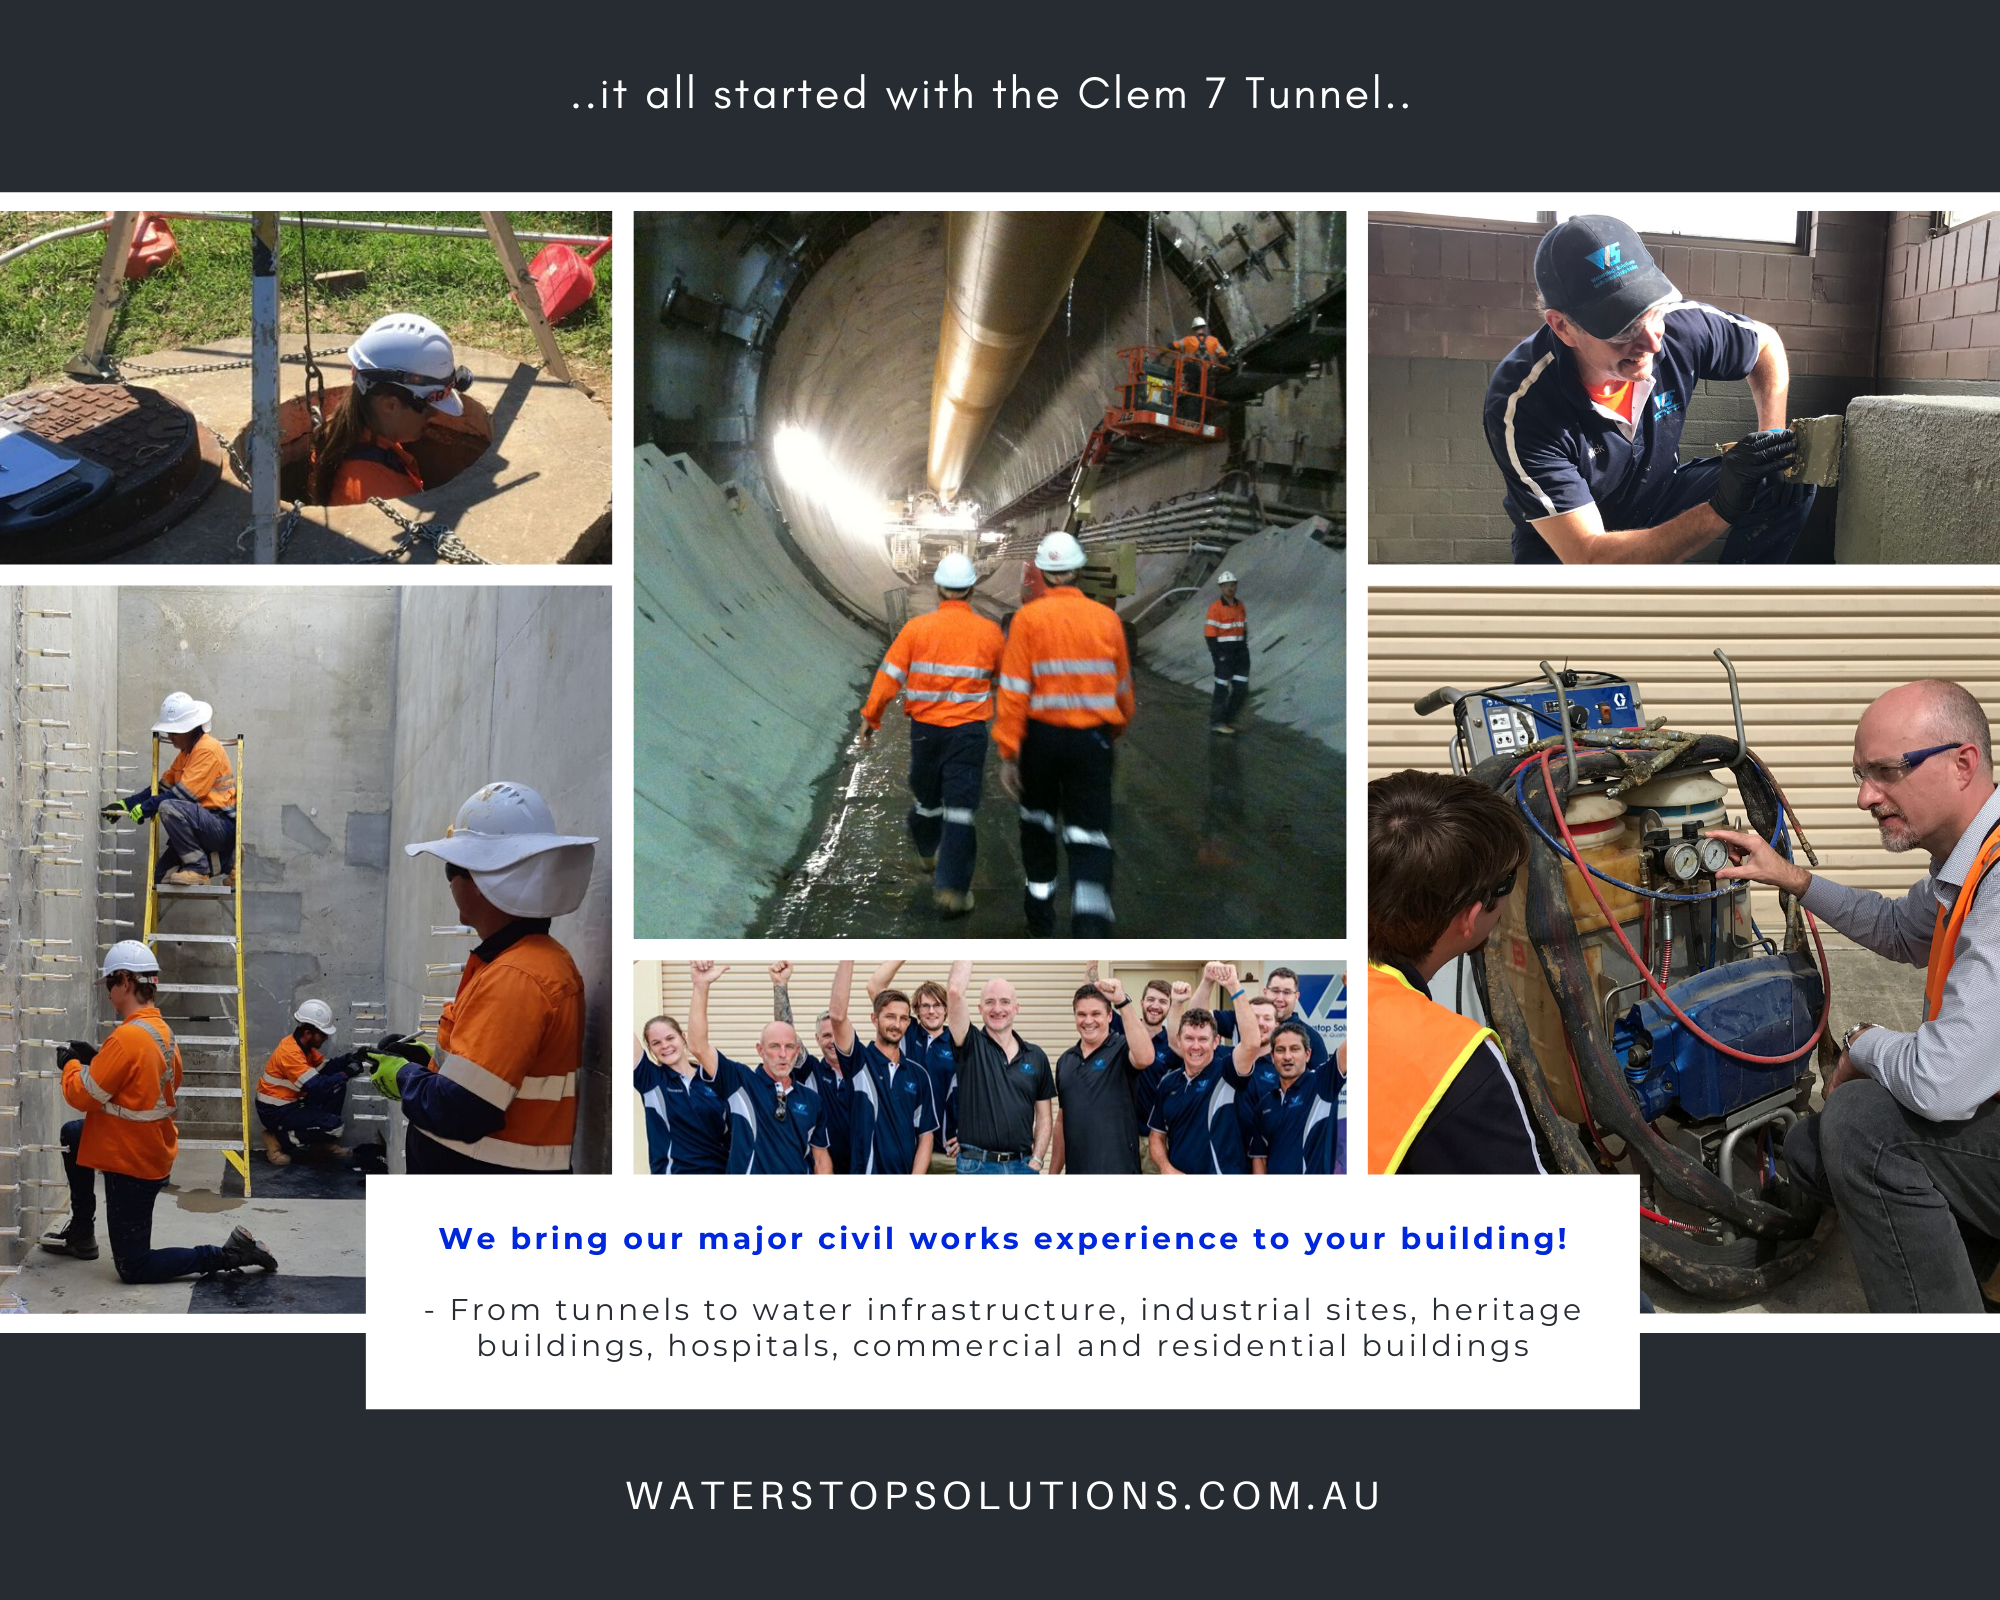 It started with the Clem 7 (The M7 Clem Jones Tunnel) tunnel in 2009 - Waterstop Solutions